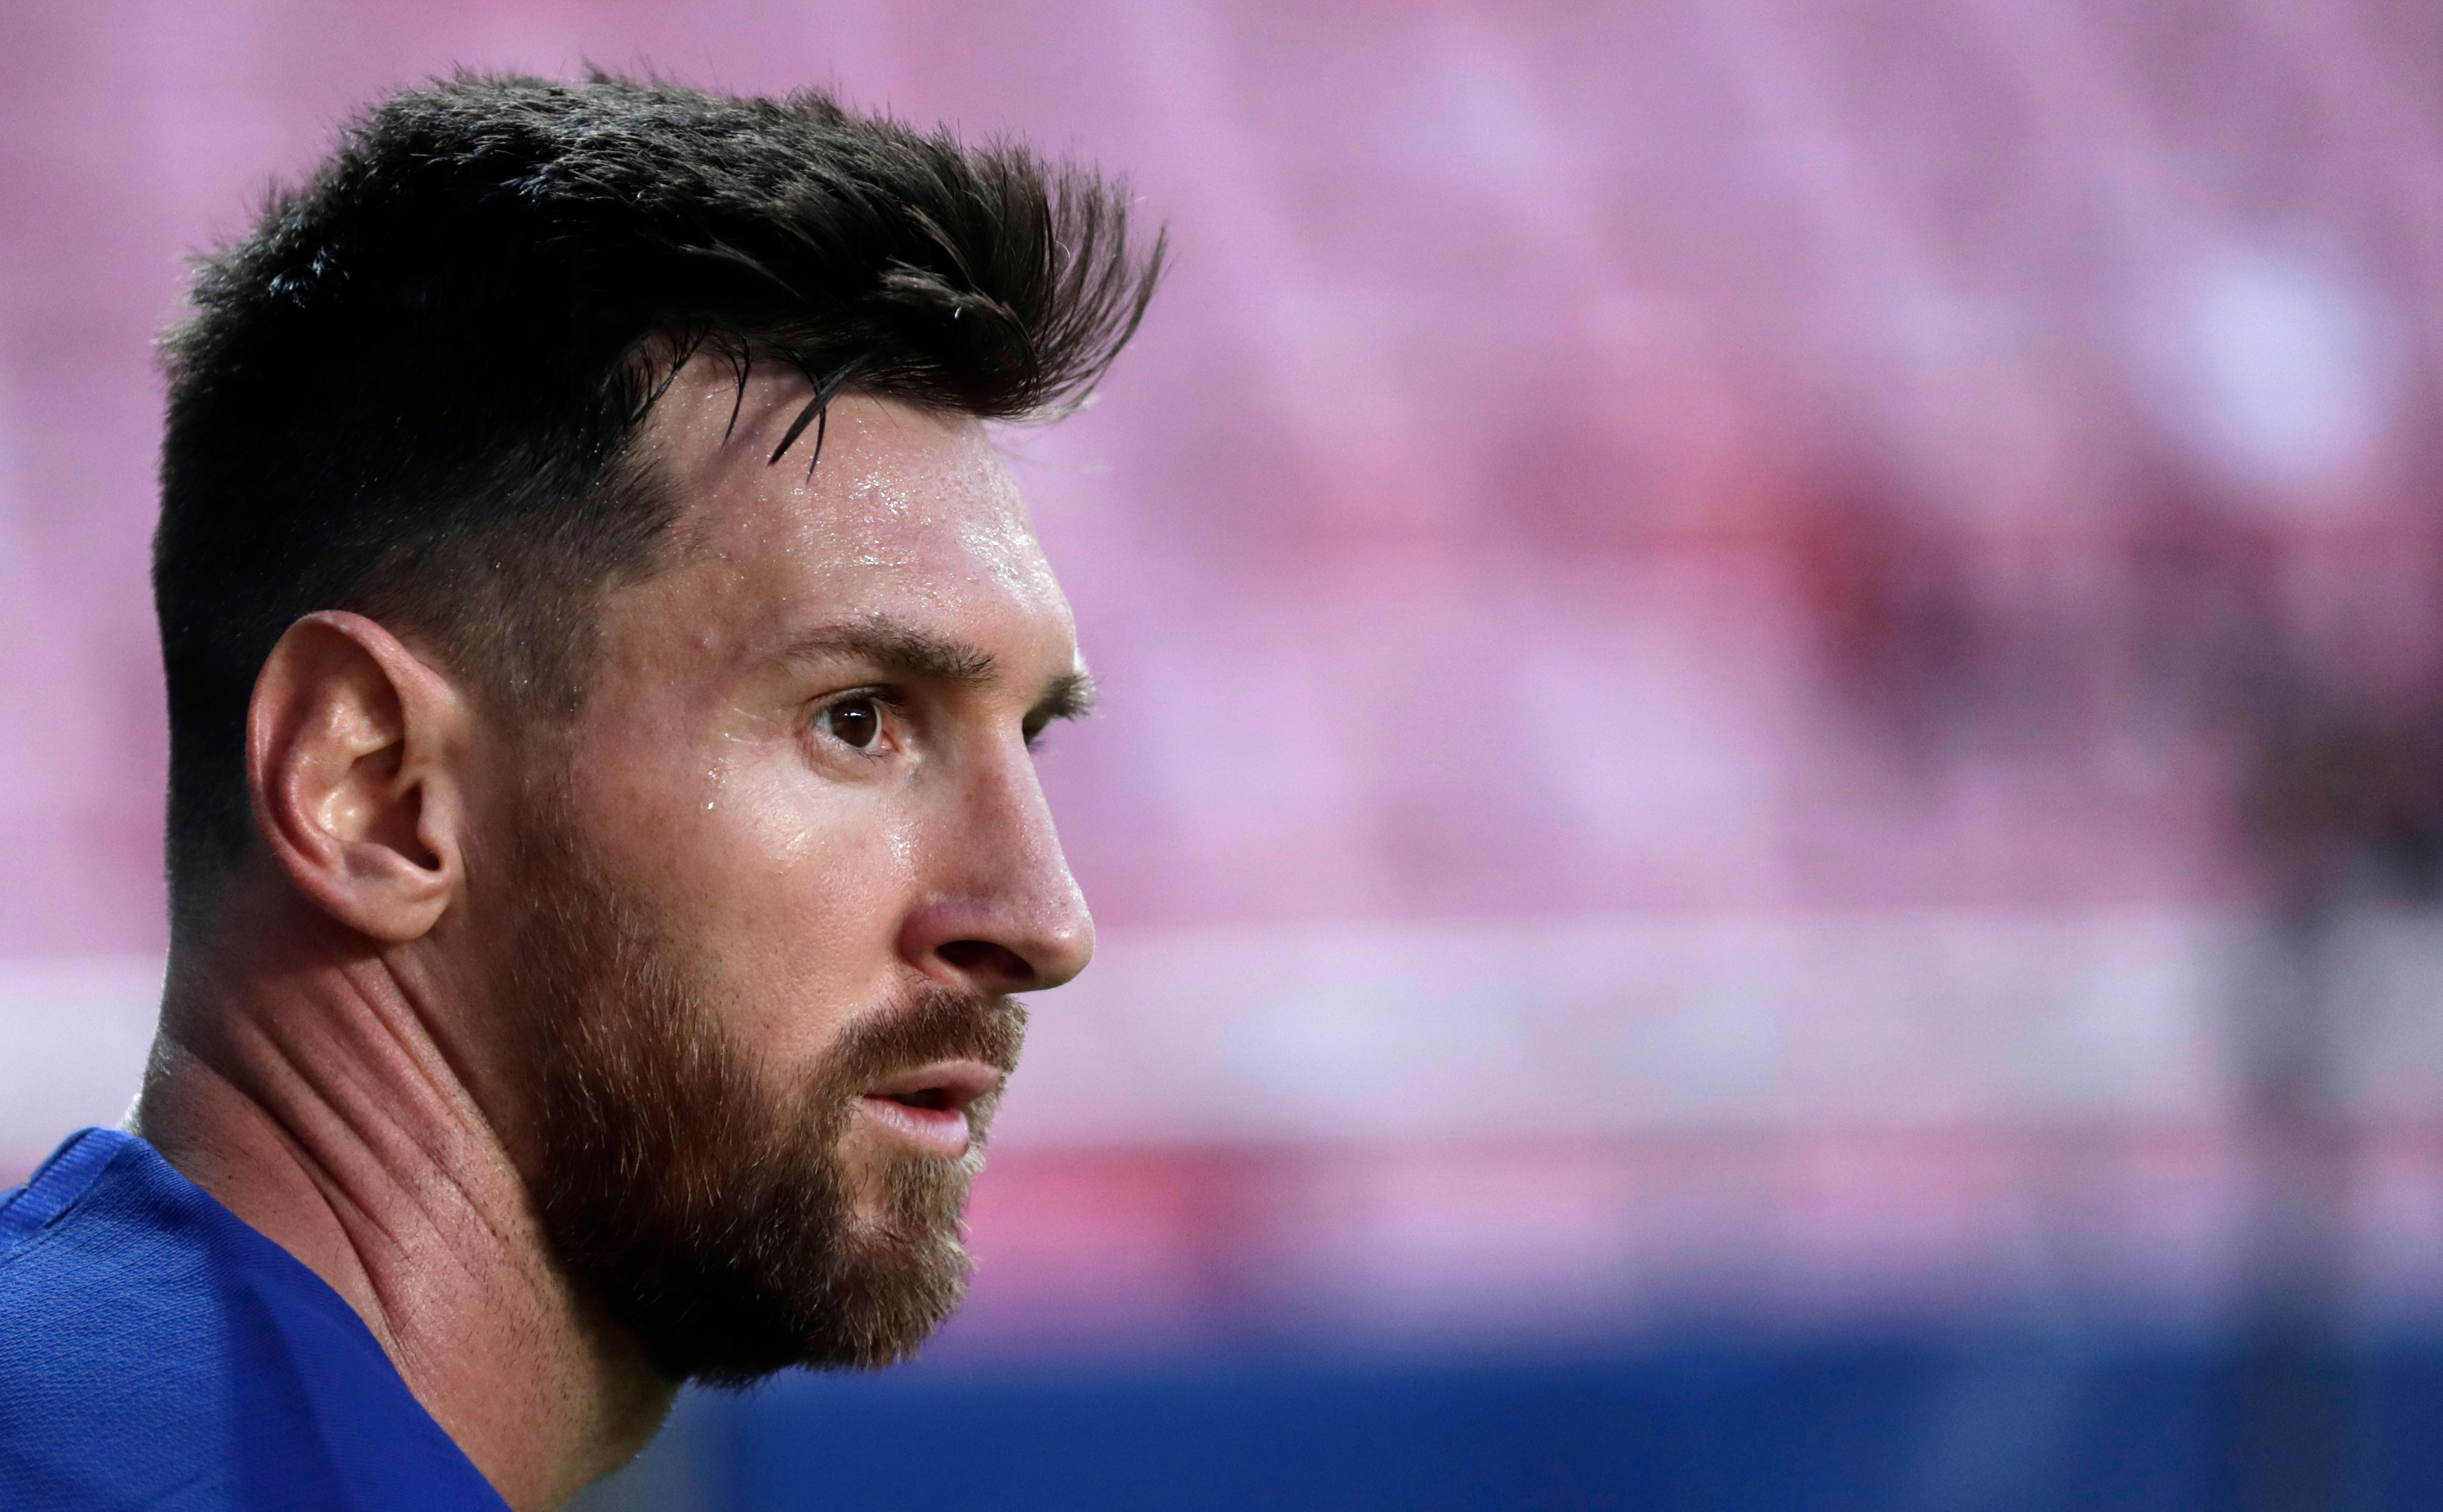 Lionel Messi is 'pillar' of new Barca project, says club president as Ronald Koeman named coach